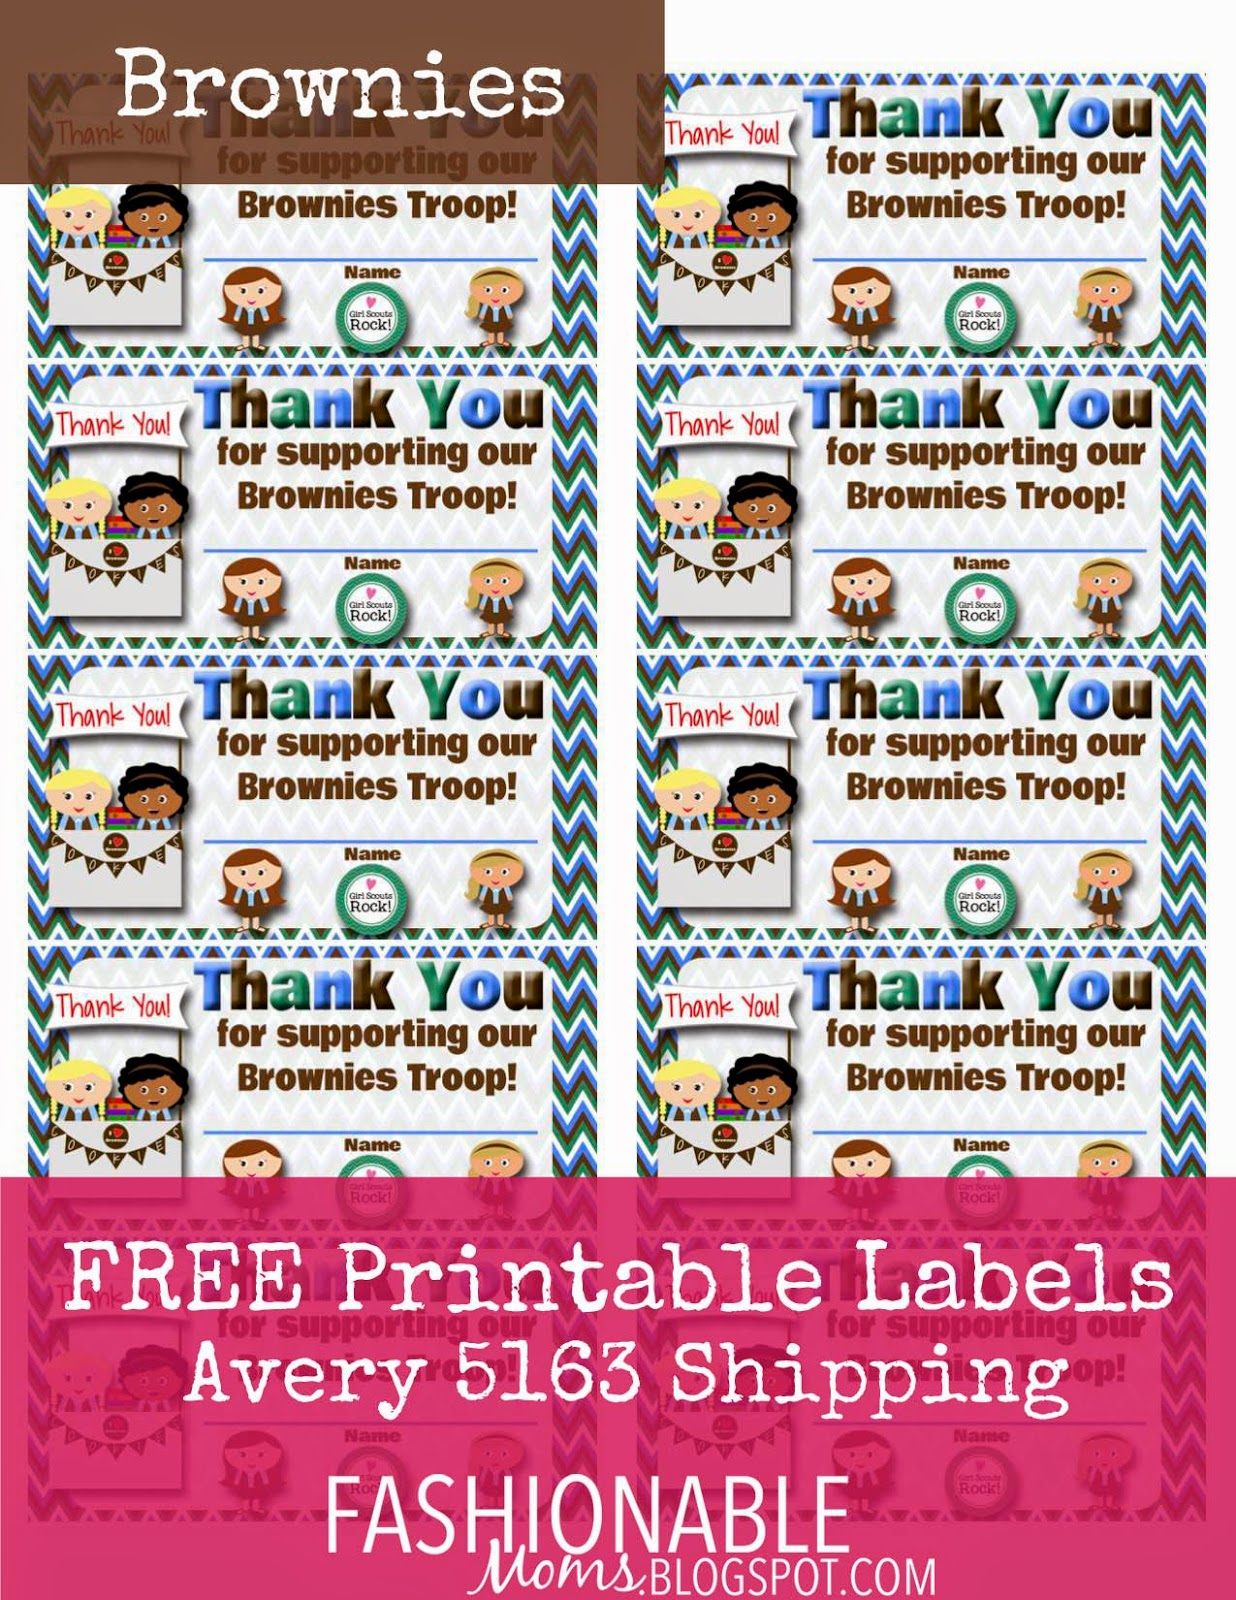 image about Girl Scout Cookie Thank You Notes Printable named My Modern Strategies: January 2015